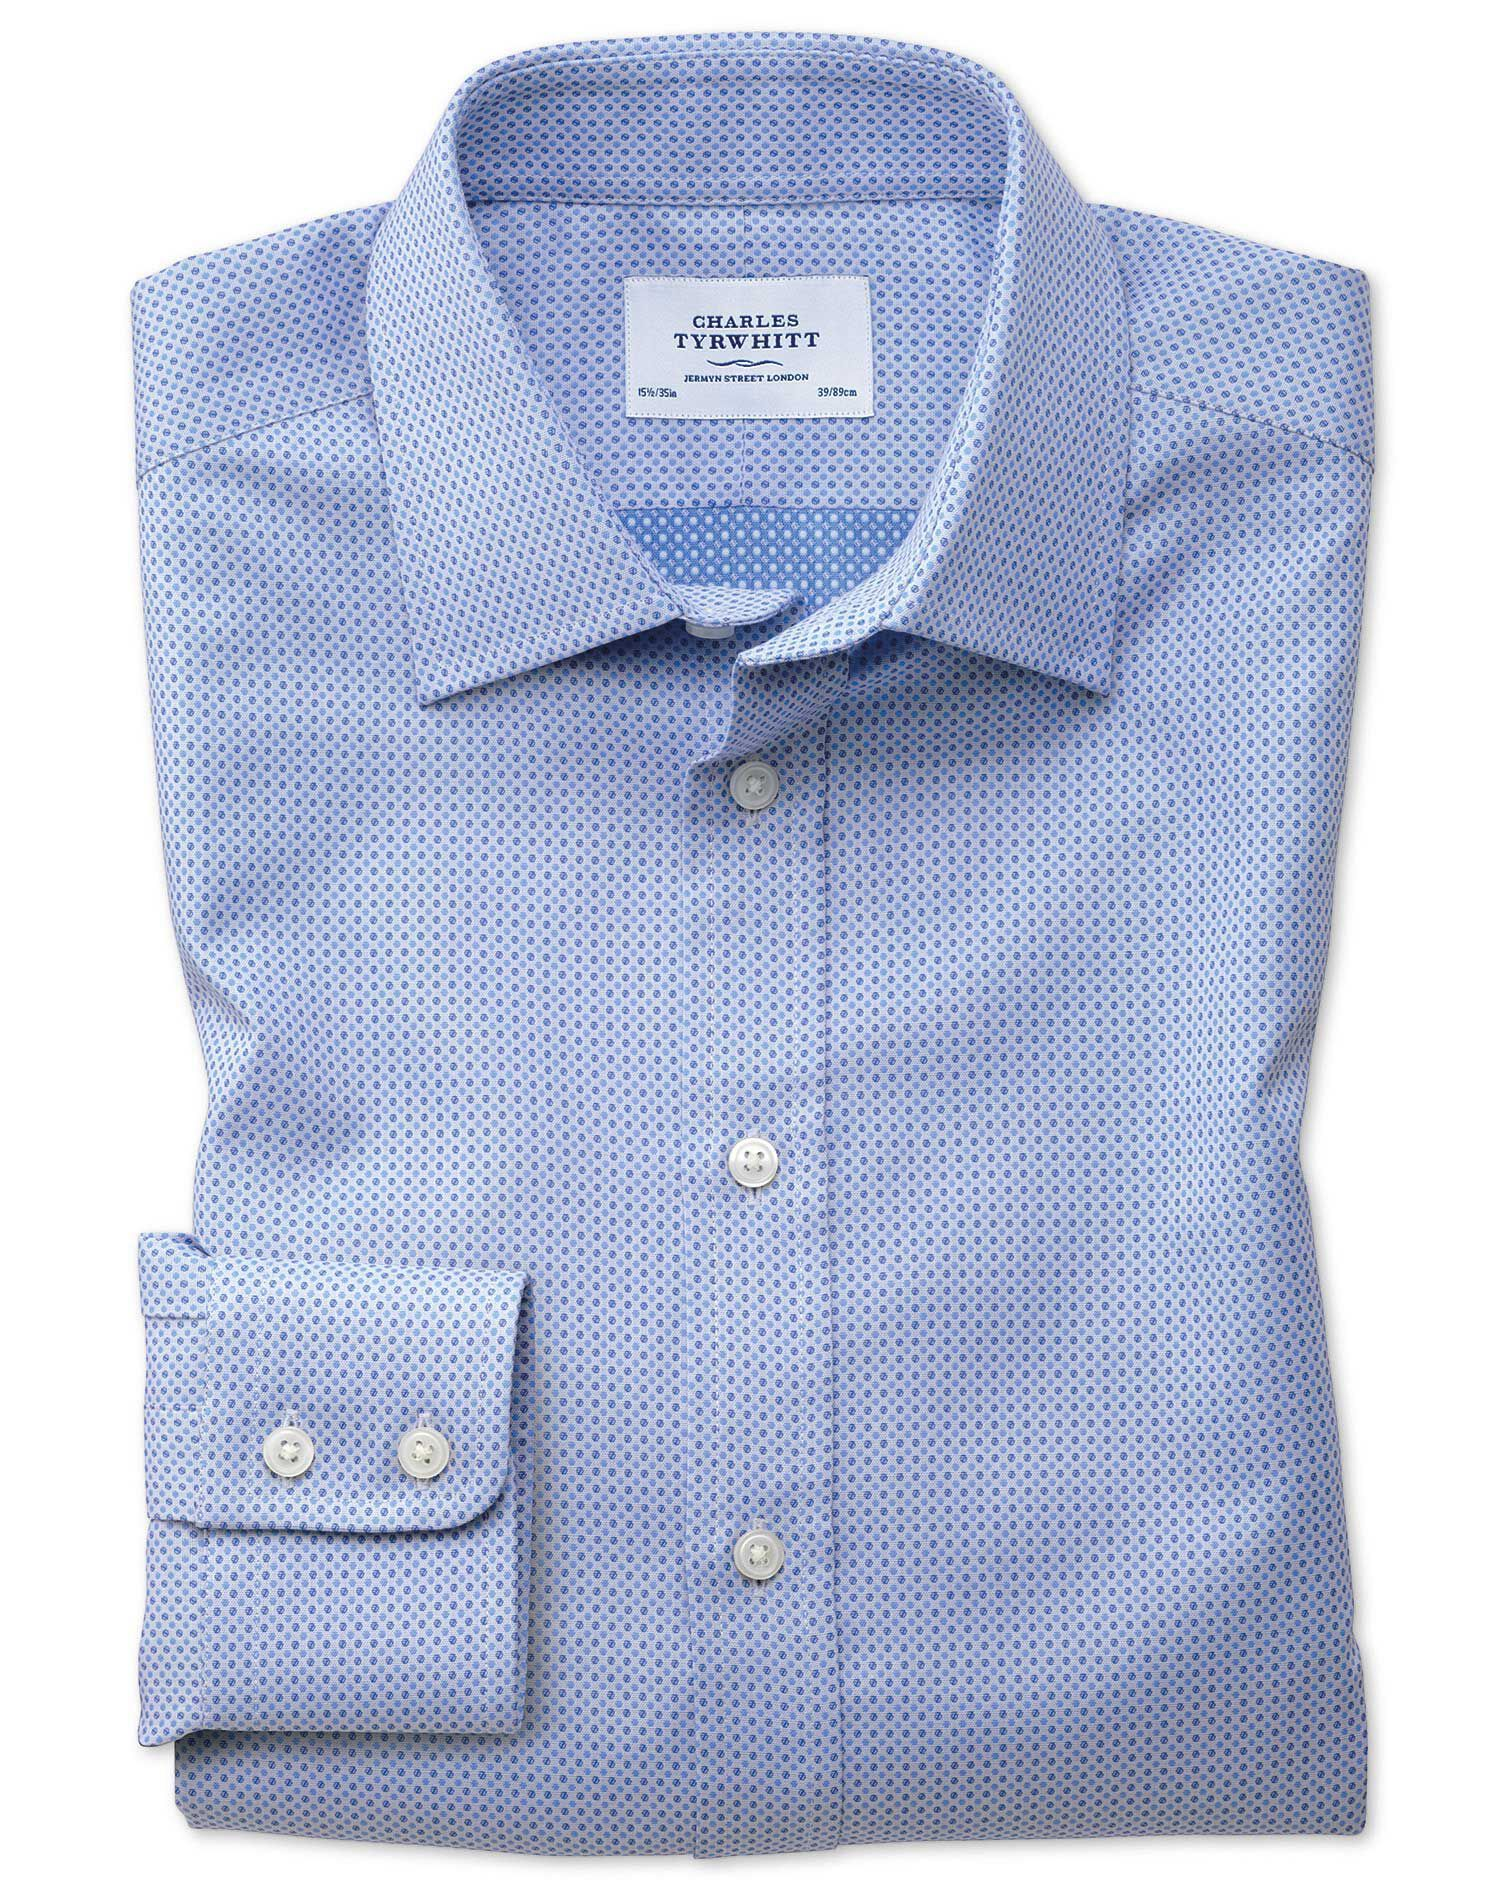 Classic Fit Egyptian Cotton Spot Weave Sky Blue Multi Formal Shirt Single Cuff Size 17.5/34 by Charl